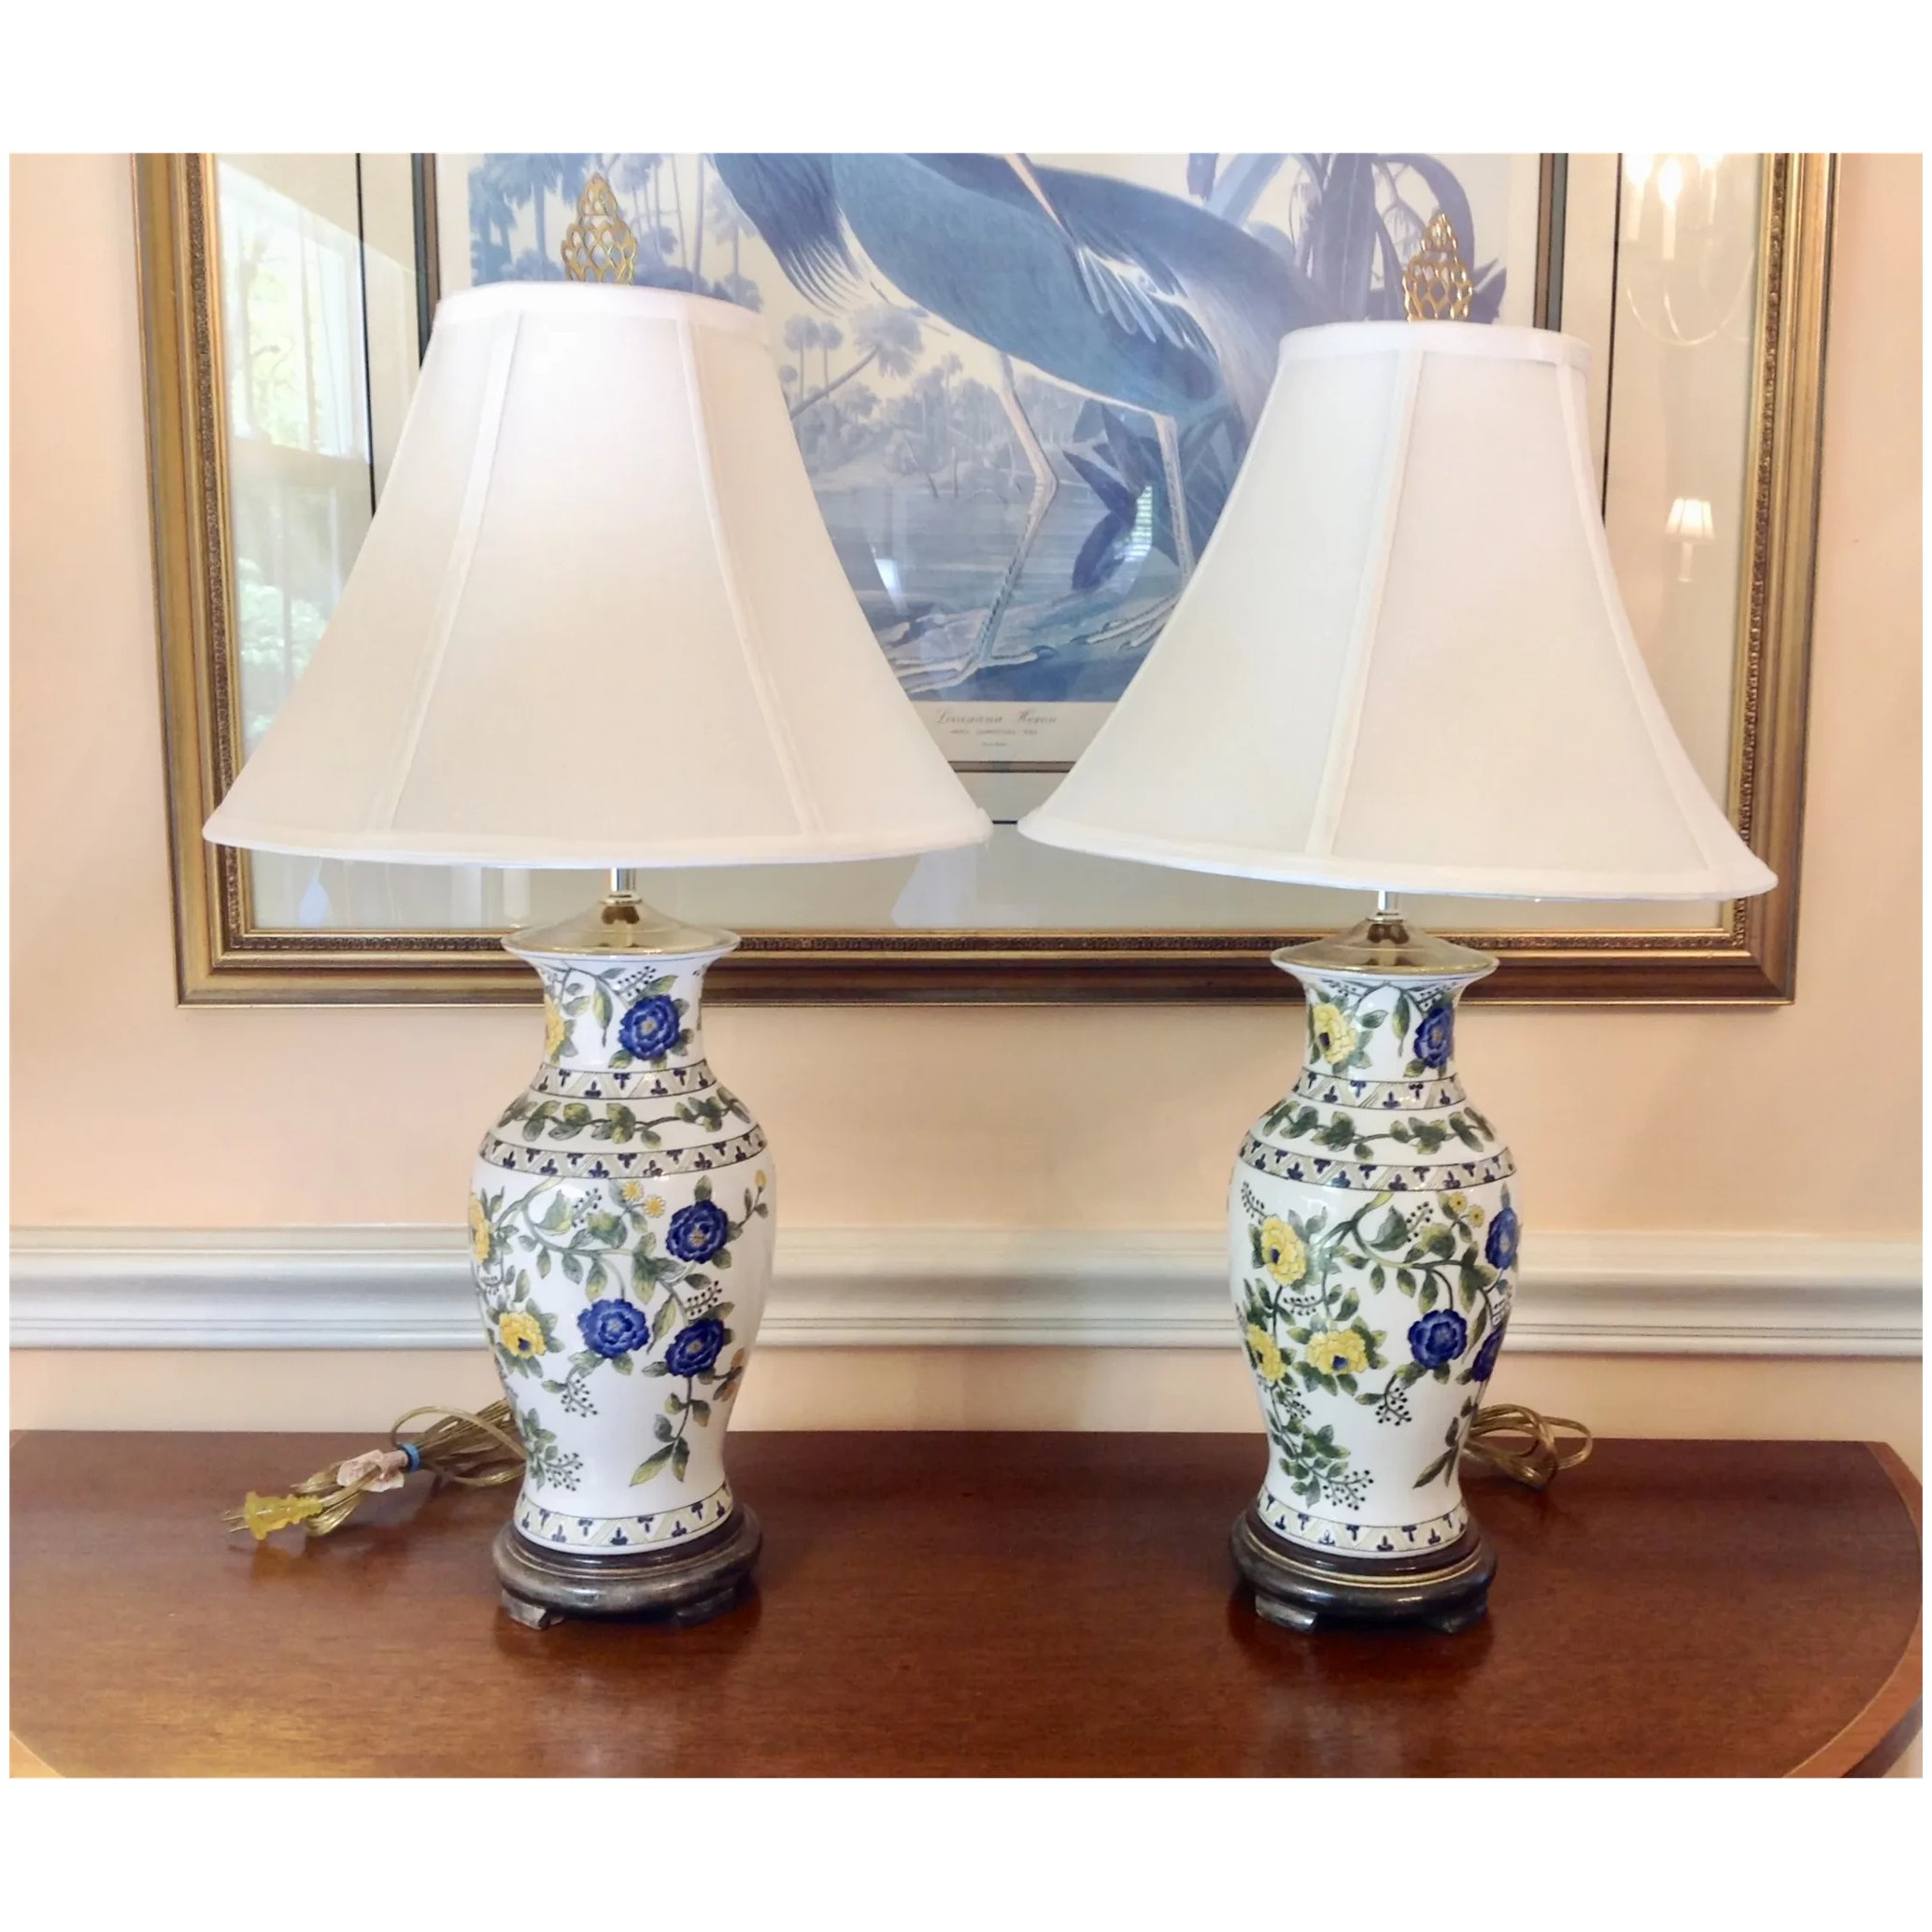 Trends of Cool Table Lamps And Shades Place Now @house2homegoods.net